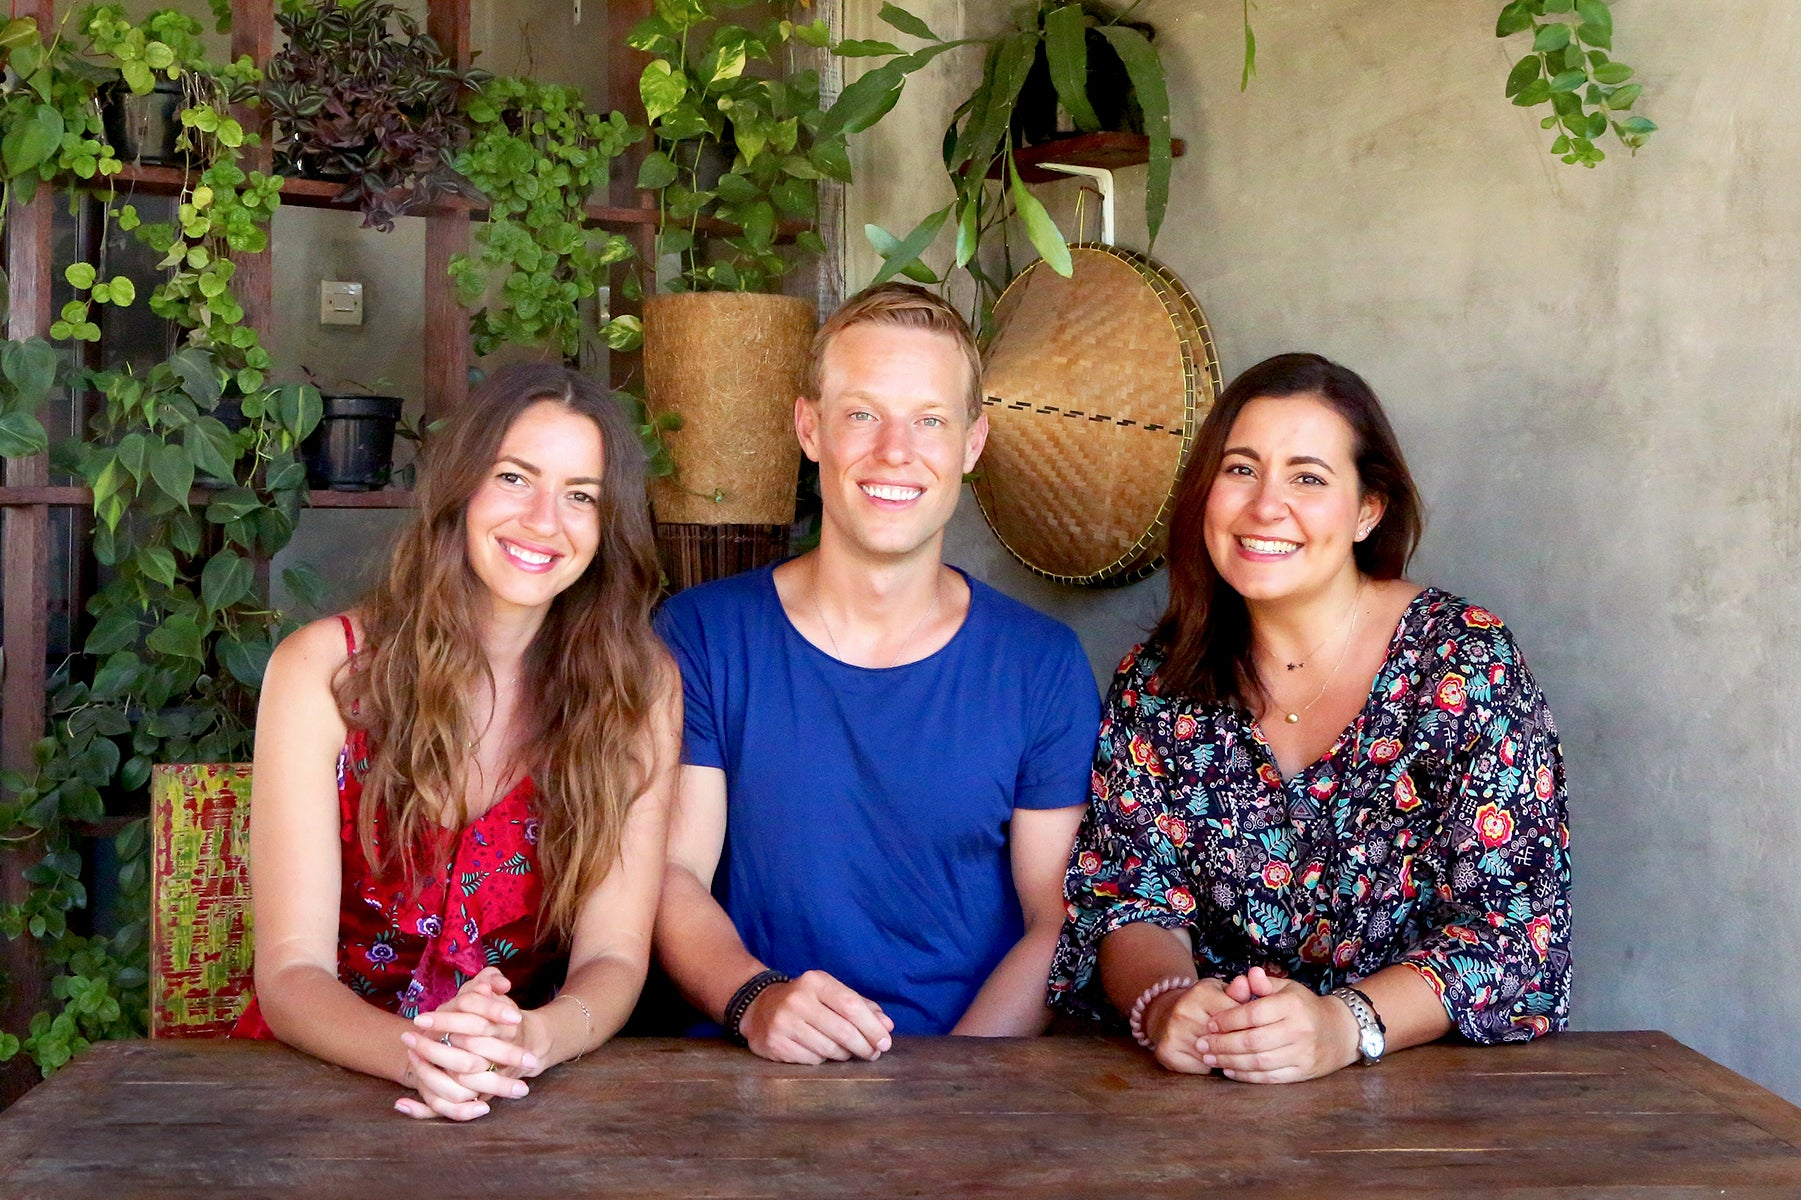 The TAMGA Designs team: founders Yana Dales (left) and Eric Dales (center) and head designer Anna Valero Domenech (right).